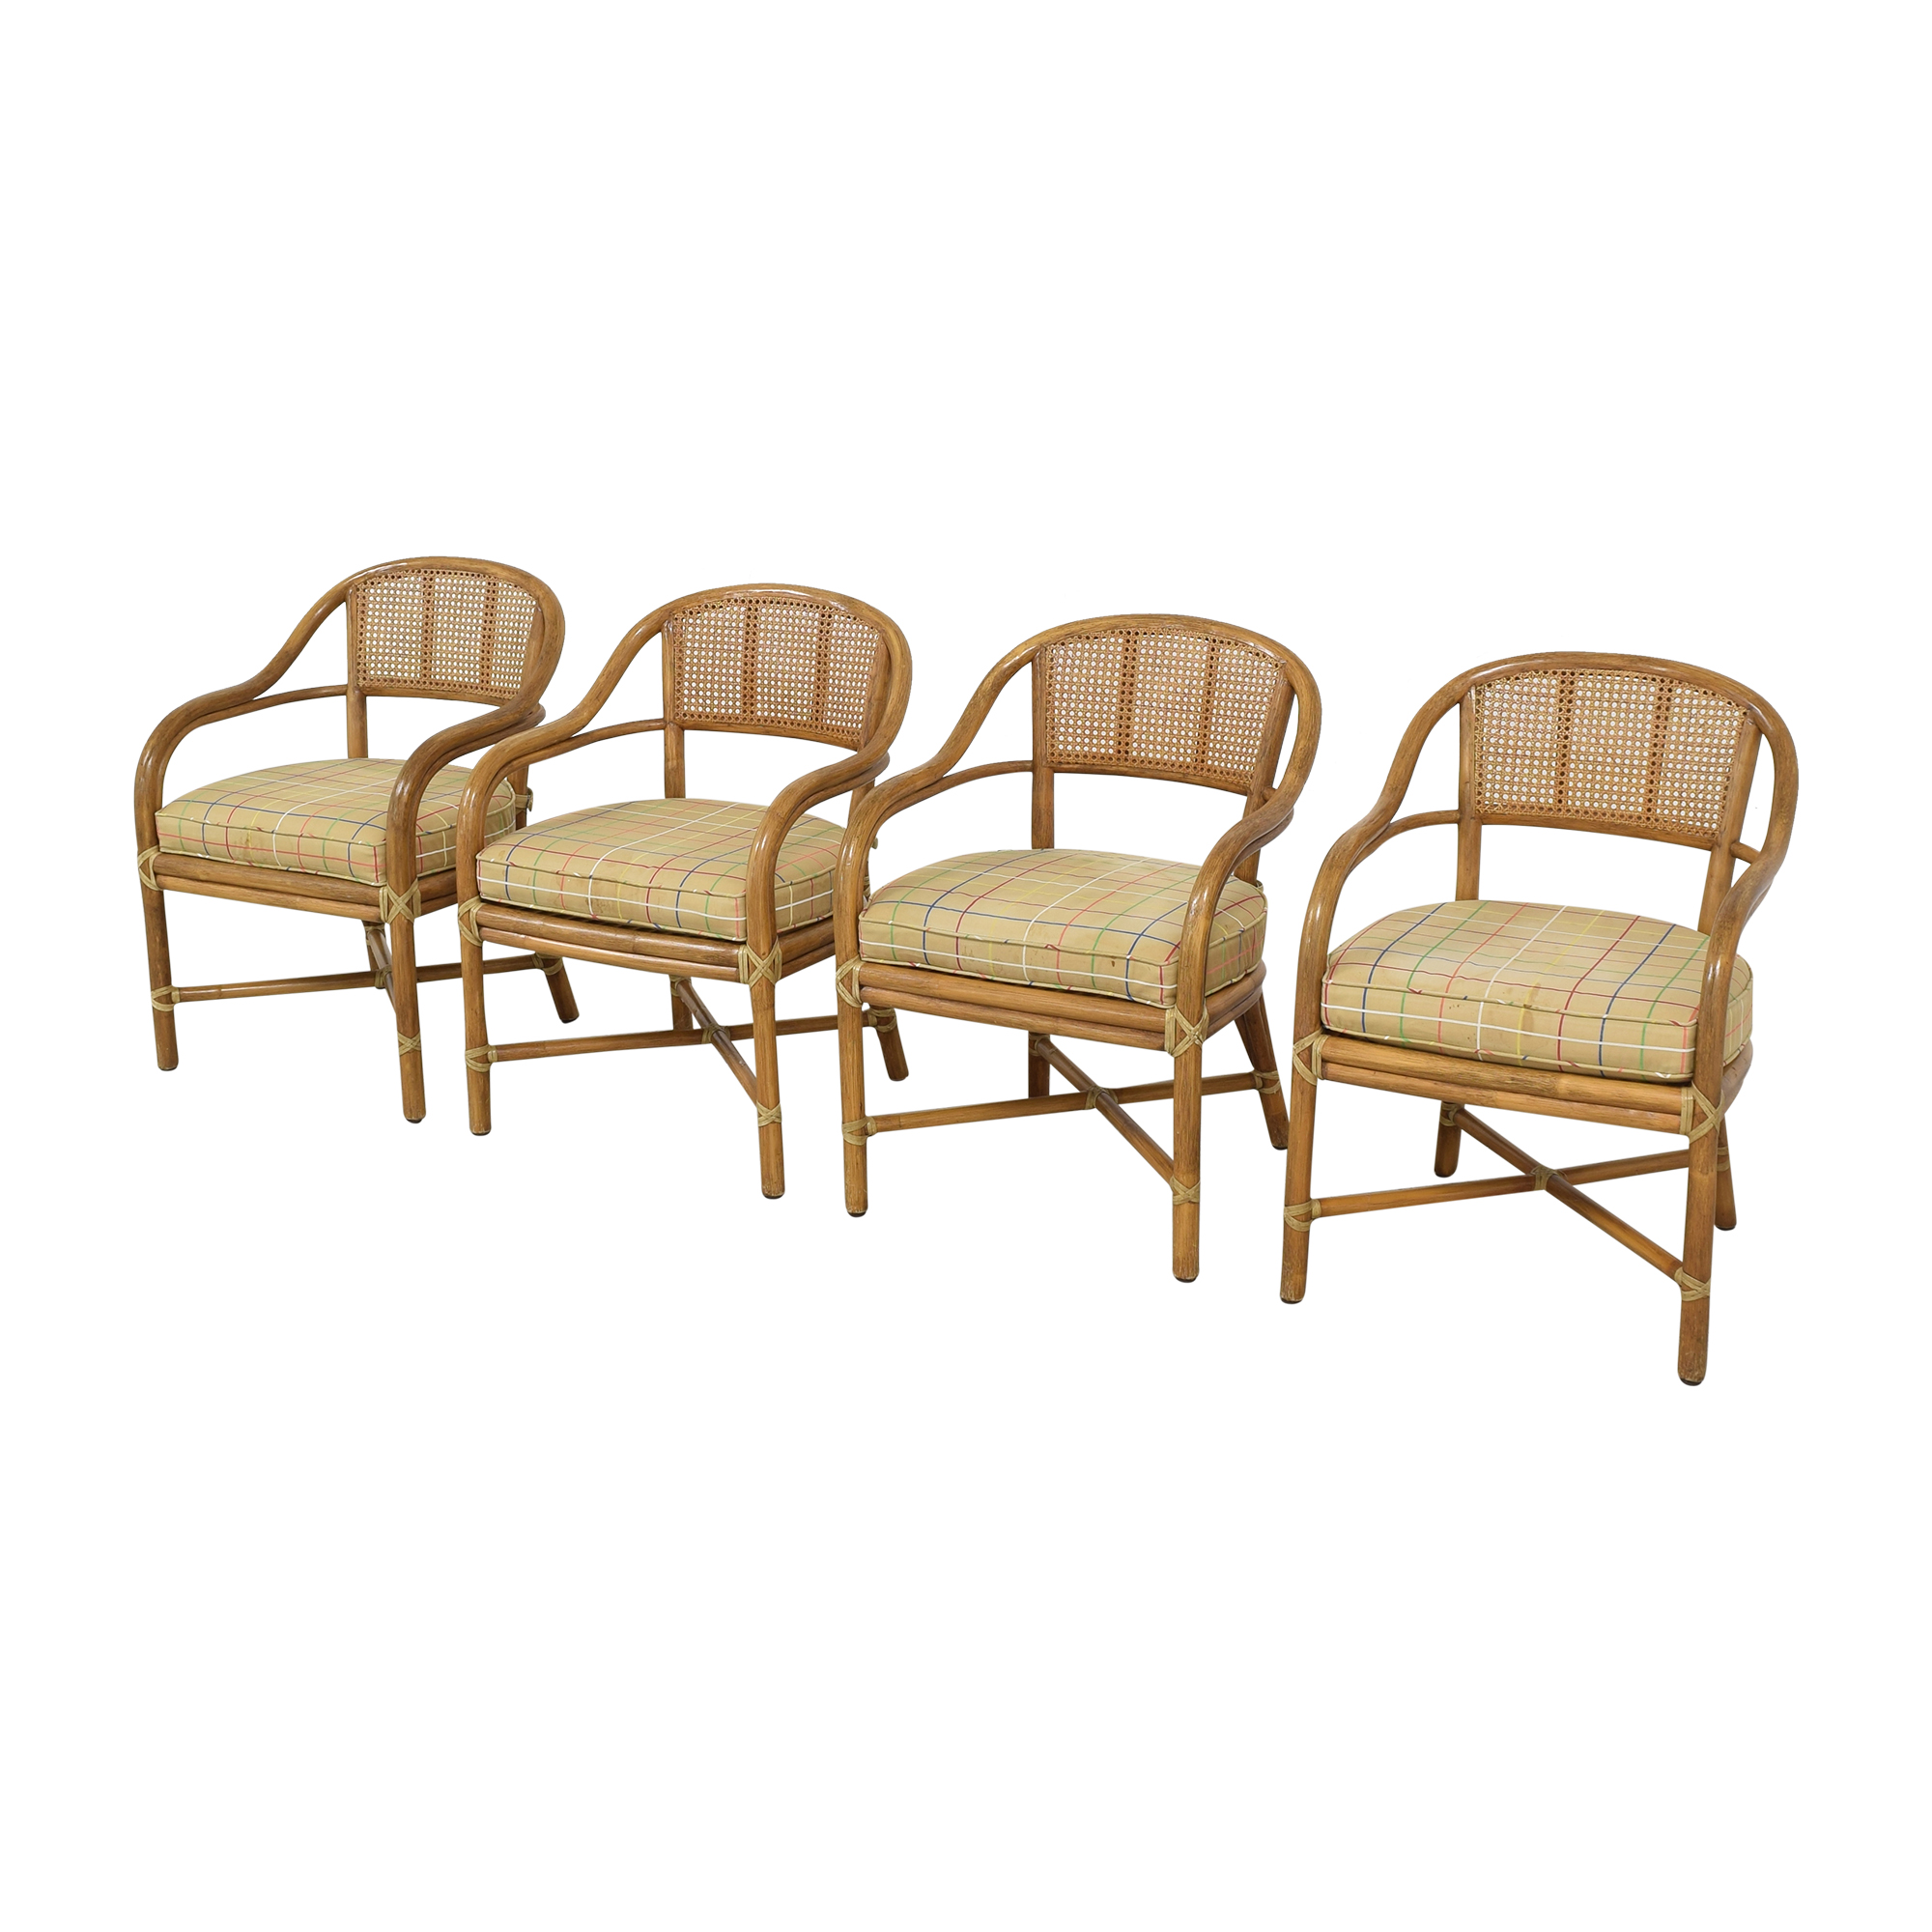 McGuire McGuire Wicker Dining Chairs discount